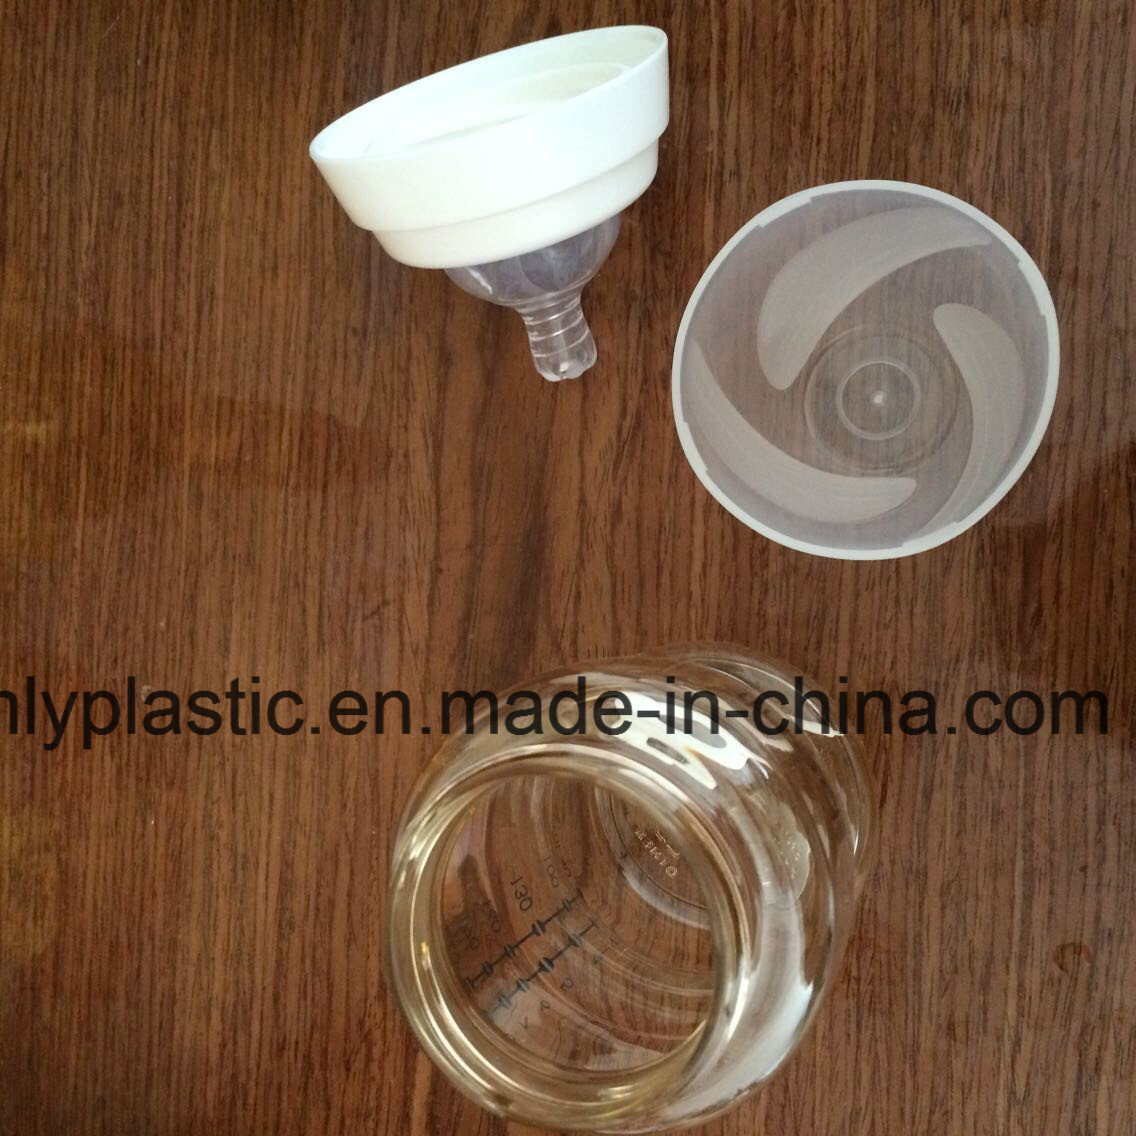 Slight Amber Engineering Plastic PPSU (Polyphenylsulfone) for Baby Bottles